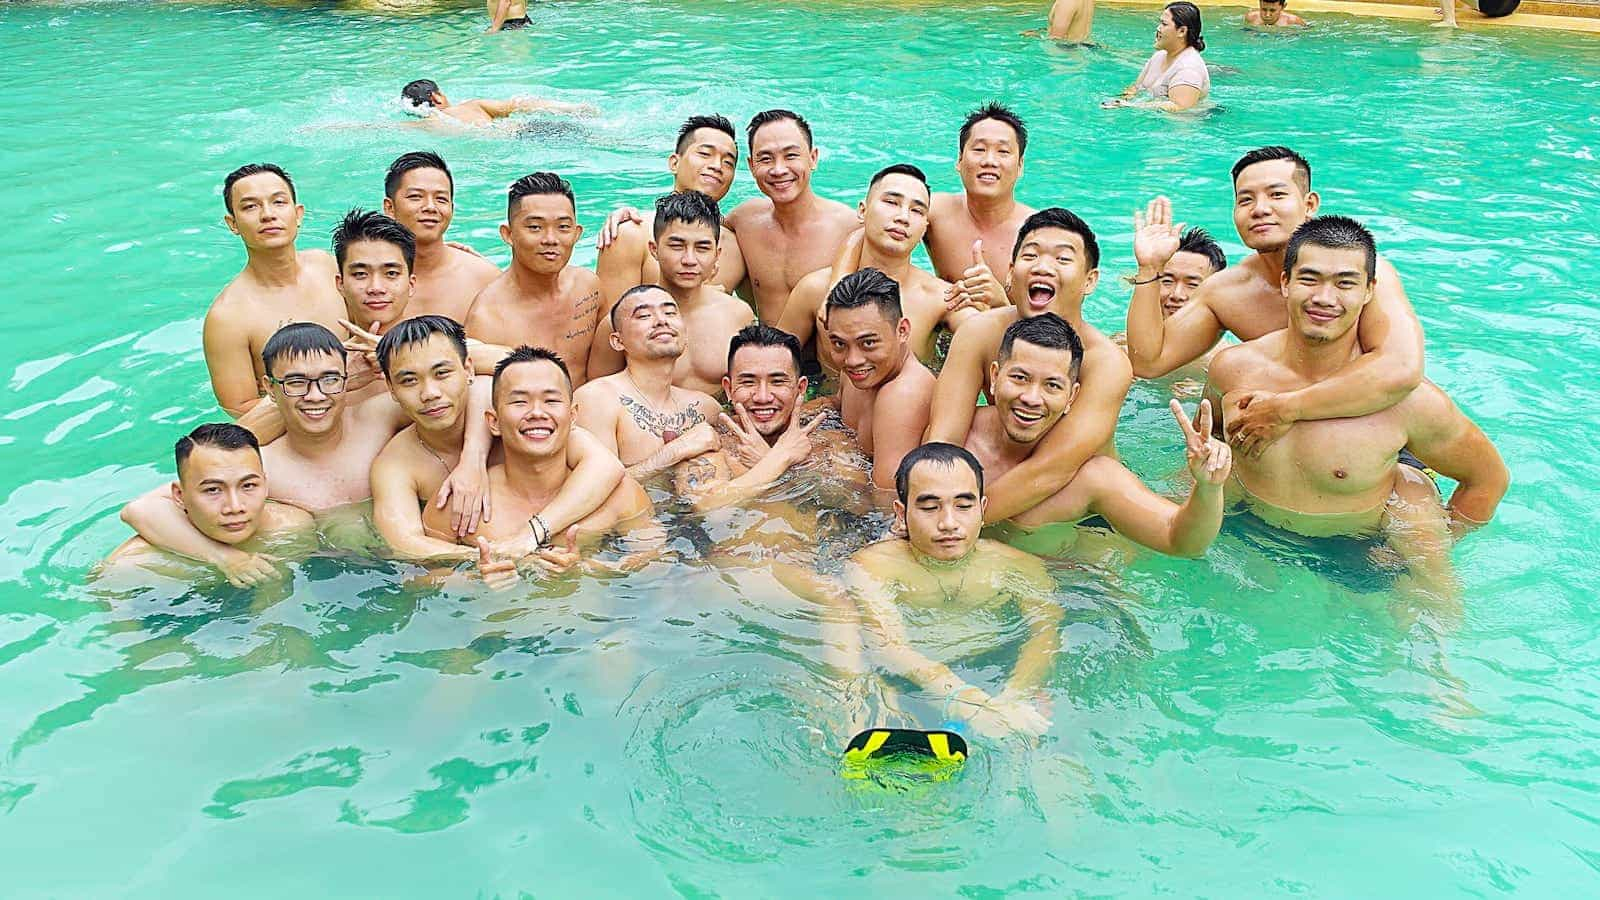 Gay pool party in Saigon is always popular